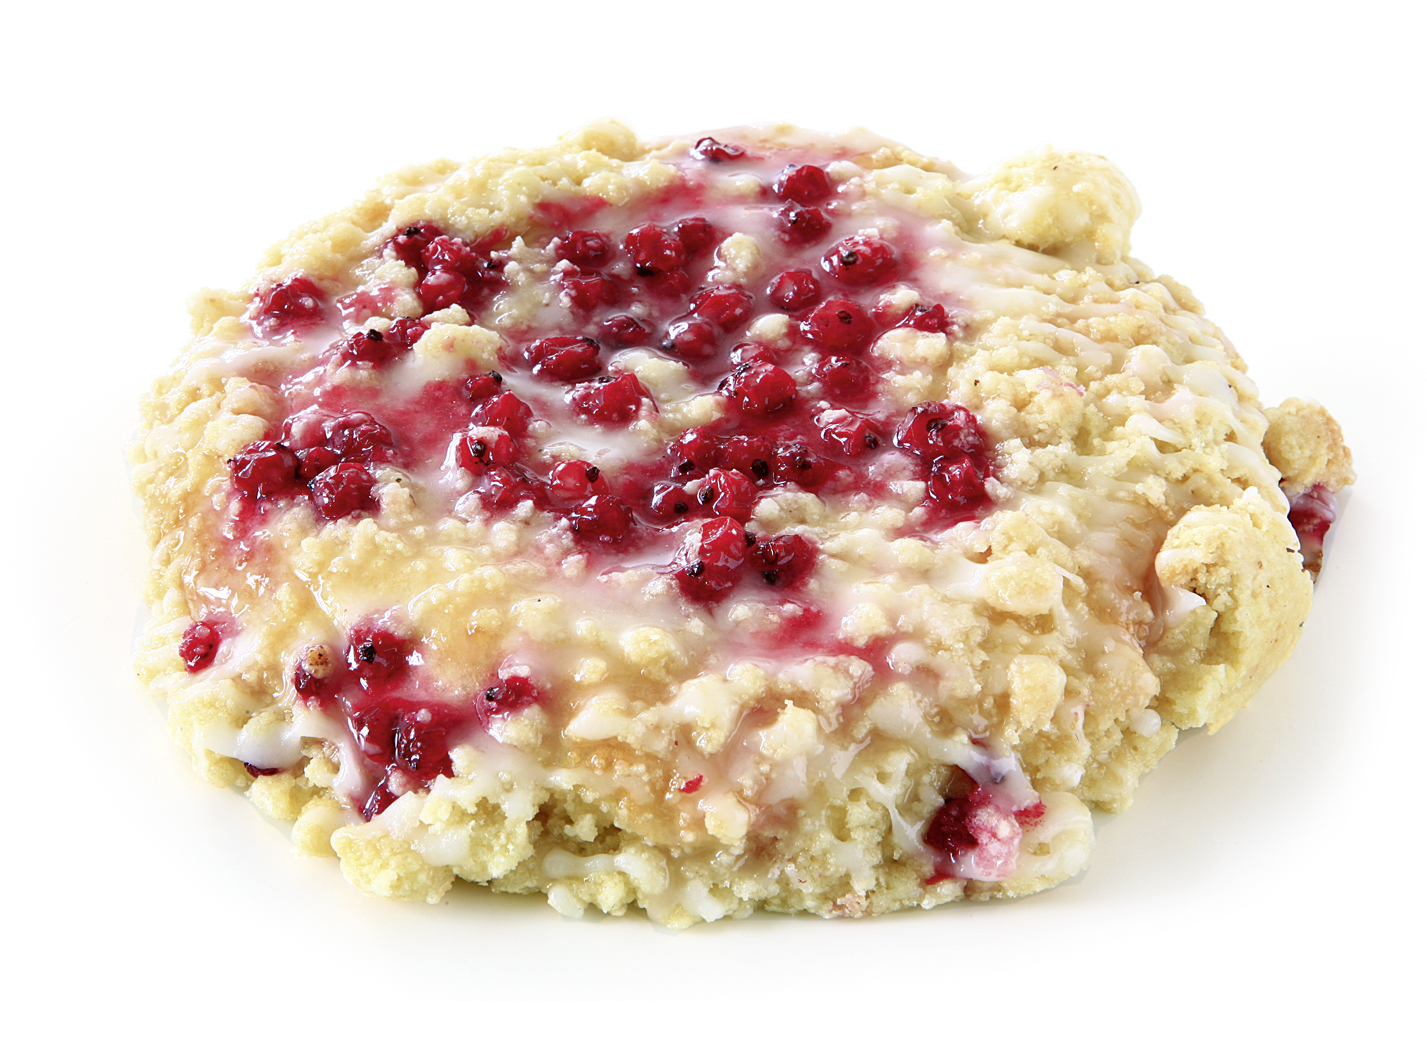 Currant Crumble pastry - Yeast pastry with 11% red currants, crumbles and decorated with fudge/ thaw only/ diameter: 14 cm